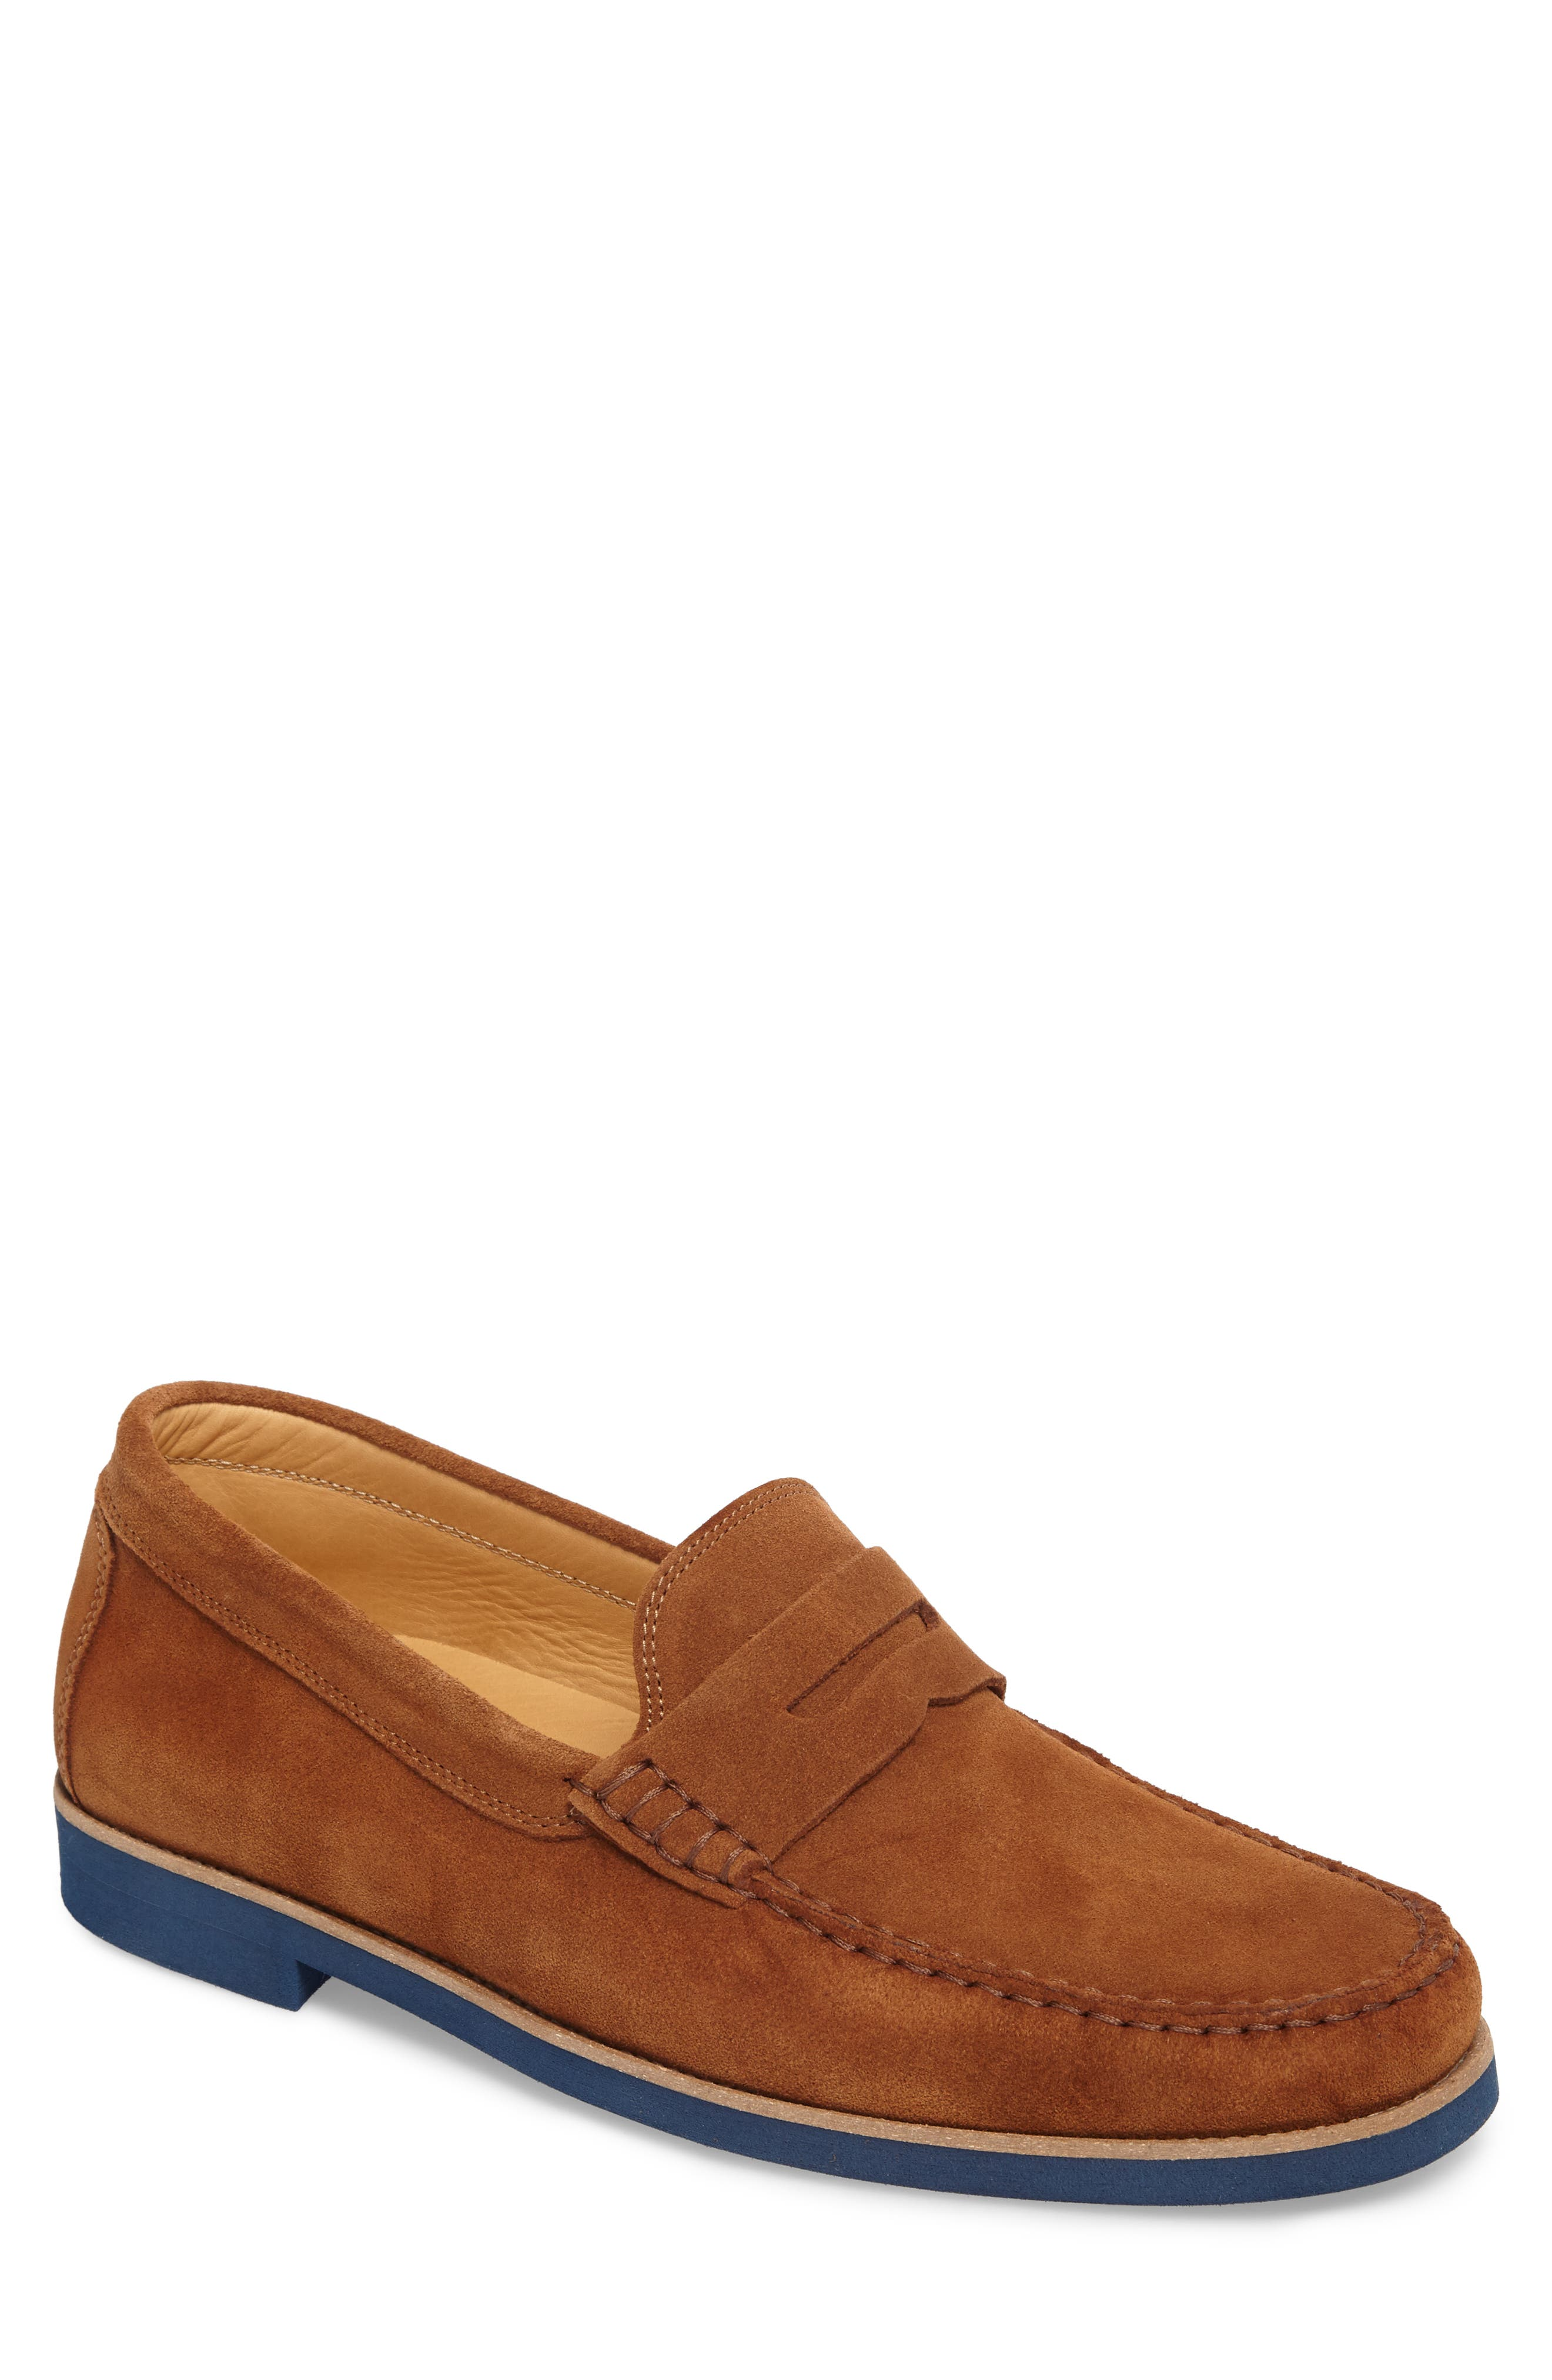 Austen Heller Kennedy Penny Loafer (Men)